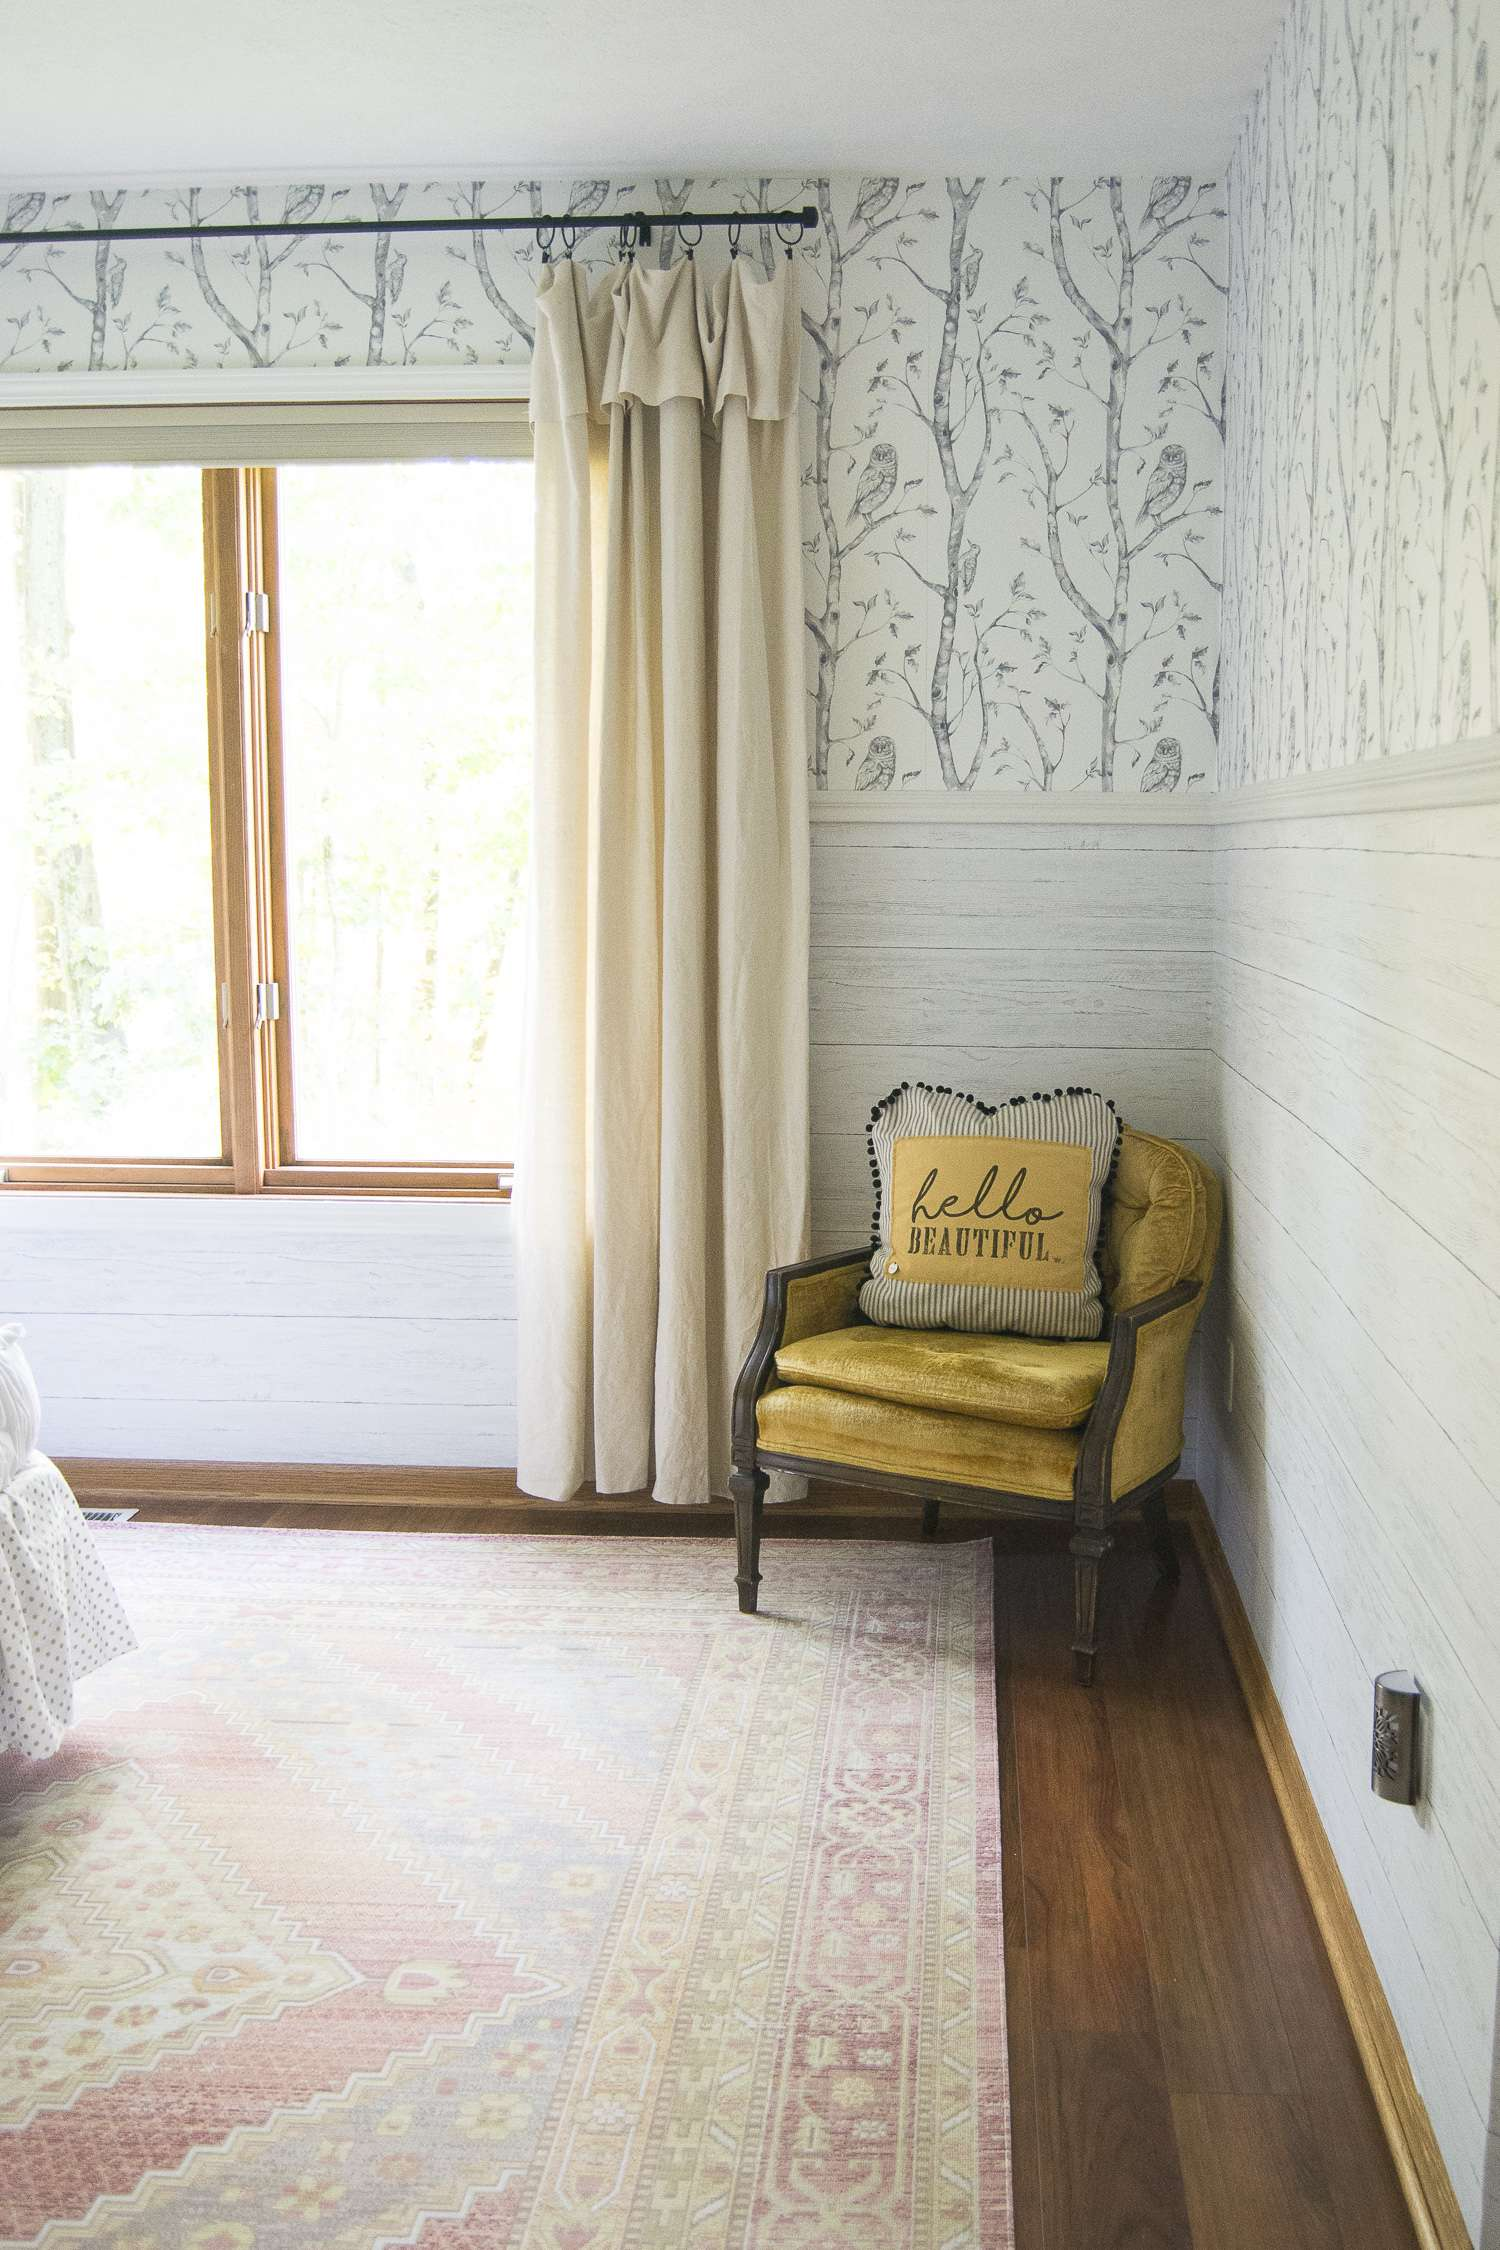 Do you love the look of wallpaper but dread installing it? Try peel and stick wallpaper! This removable wallpaper packs a punch for interior design.